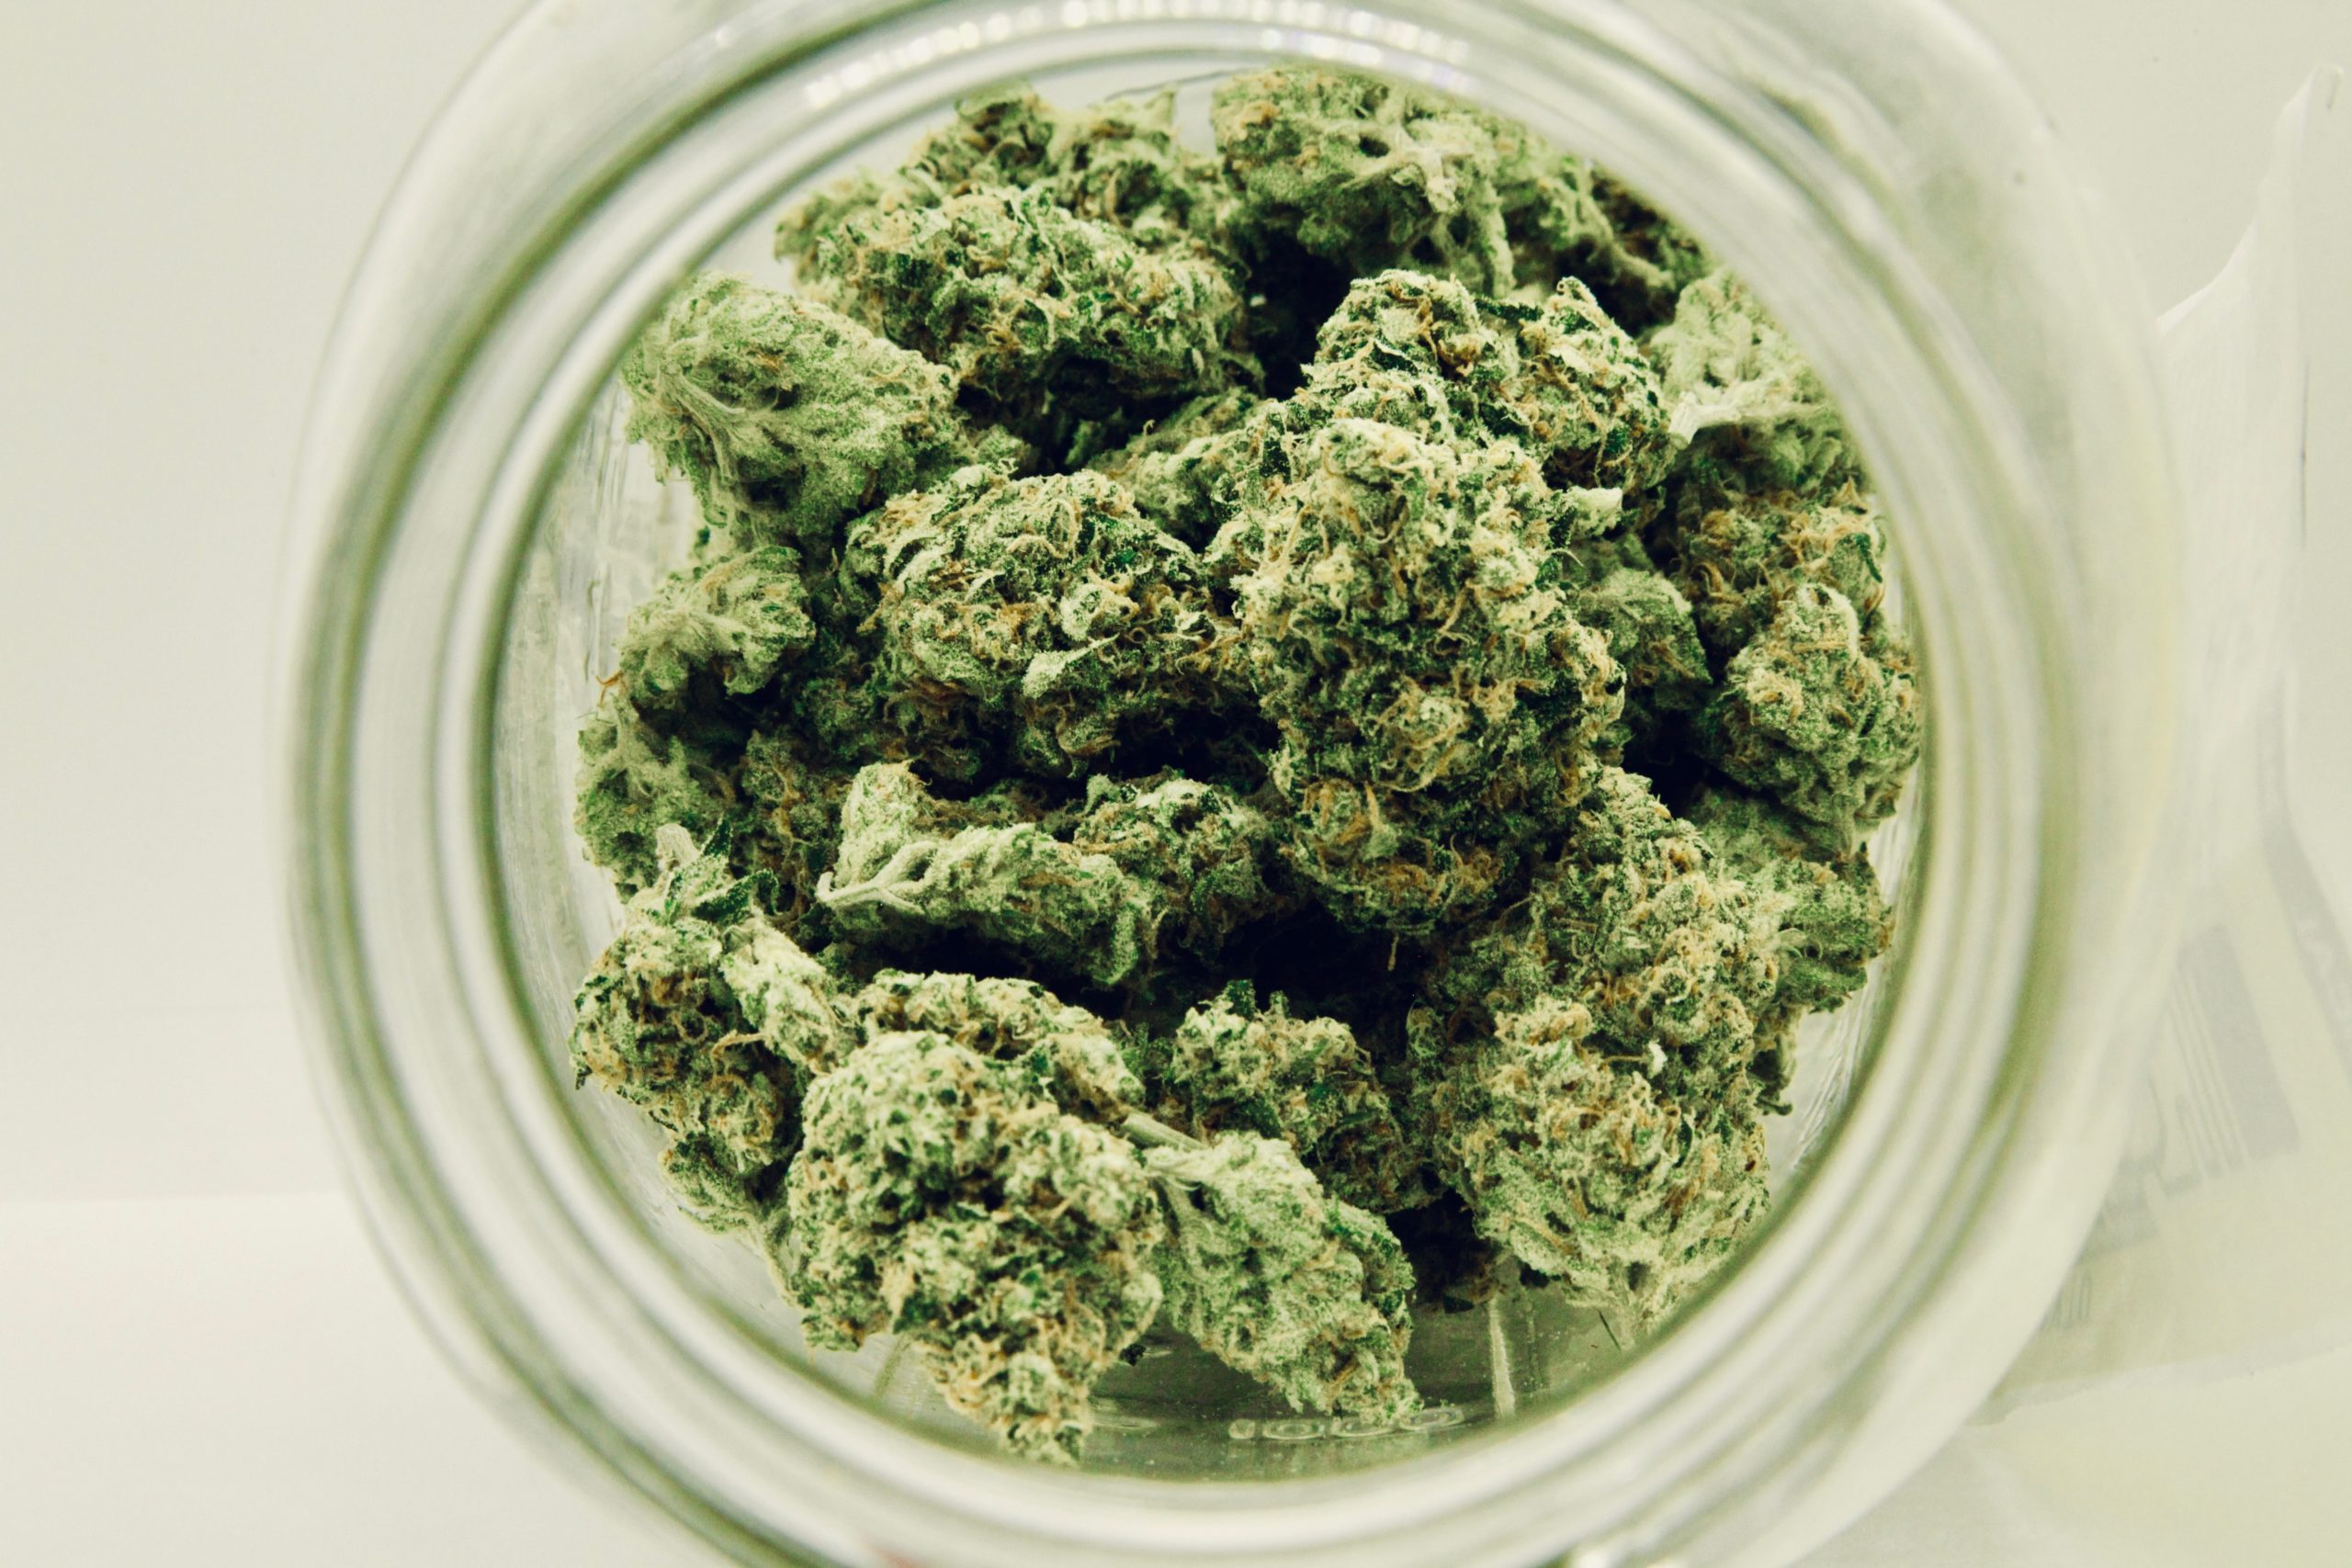 Are Medical and Recreational Marijuana Programs Different?